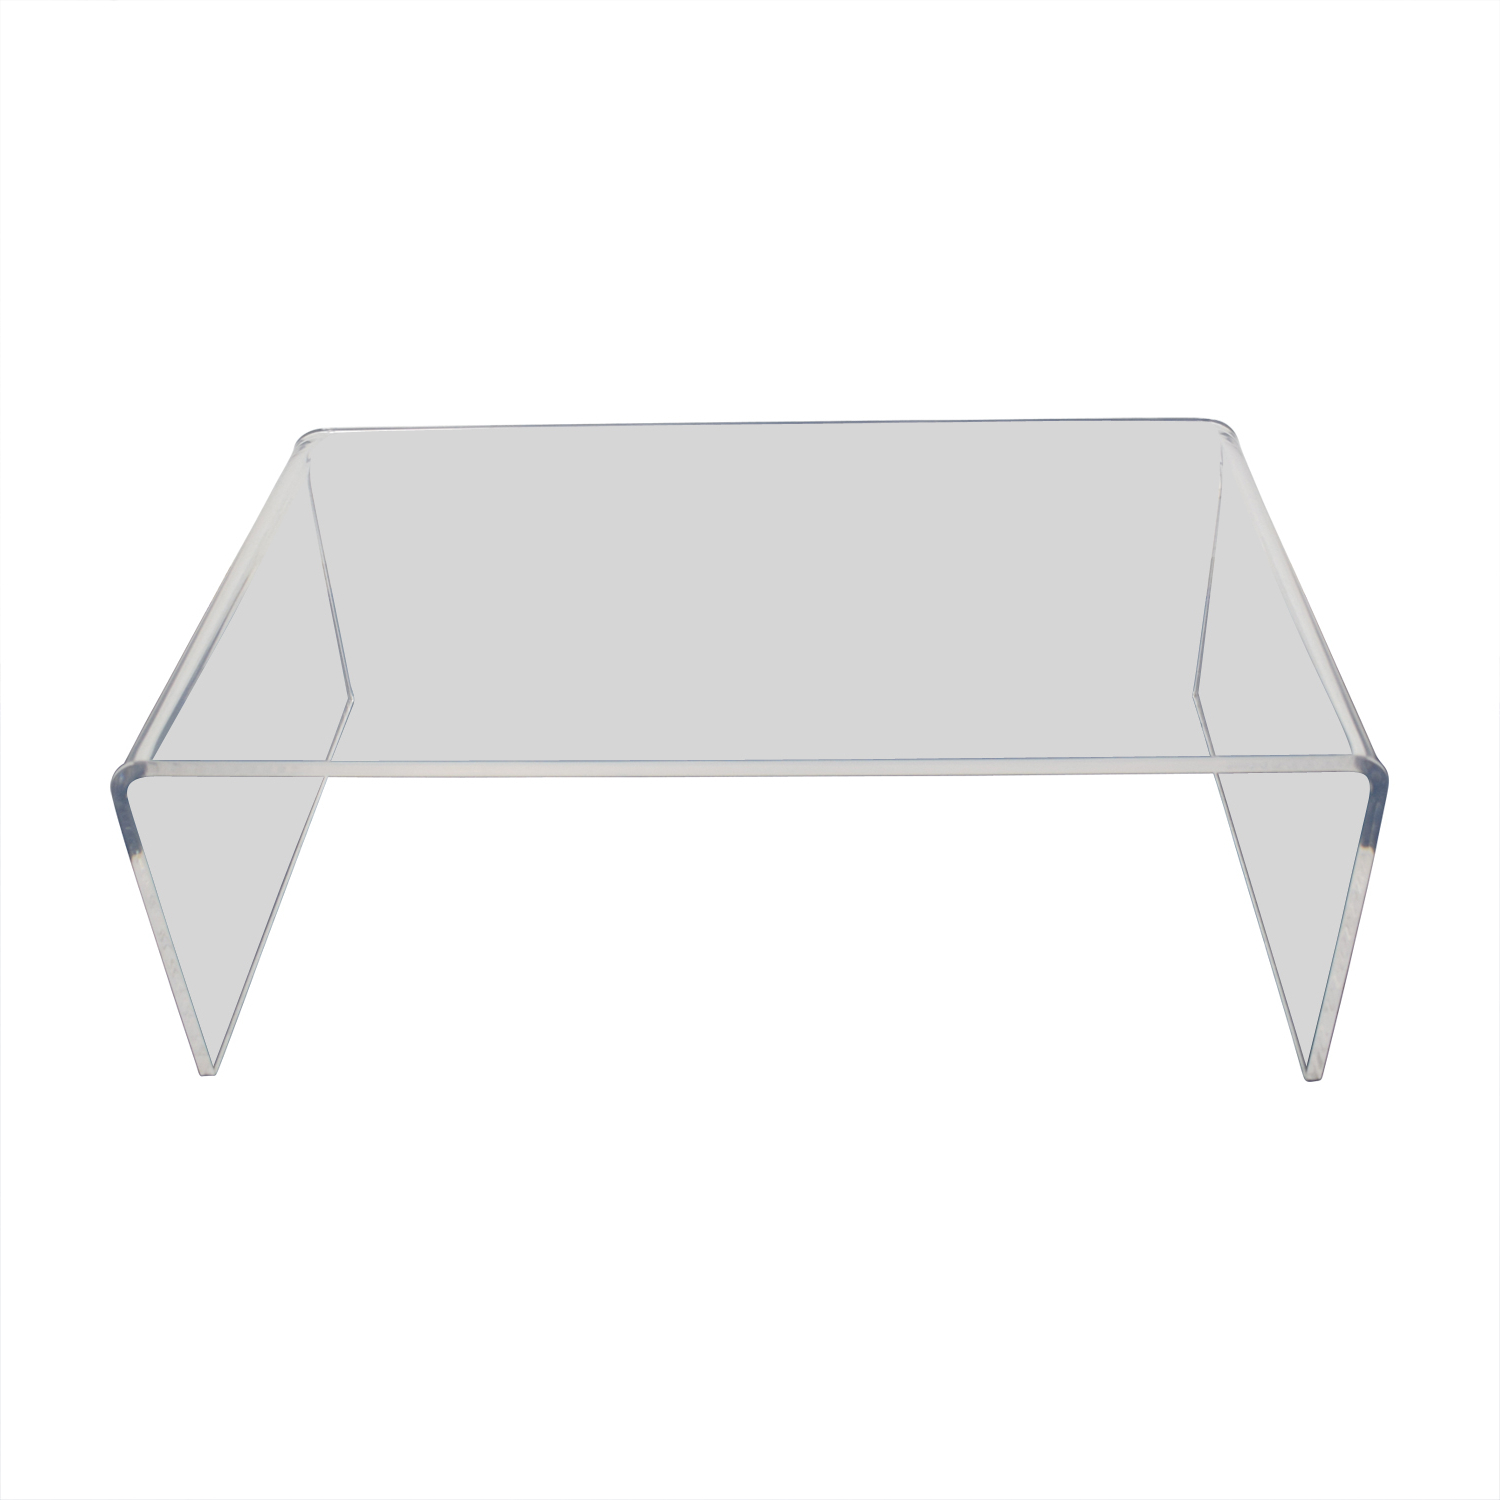 Cb2 Peekaboo Acrylic Coffee Table With Popular Peekaboo Acrylic Coffee Tables (Gallery 1 of 20)